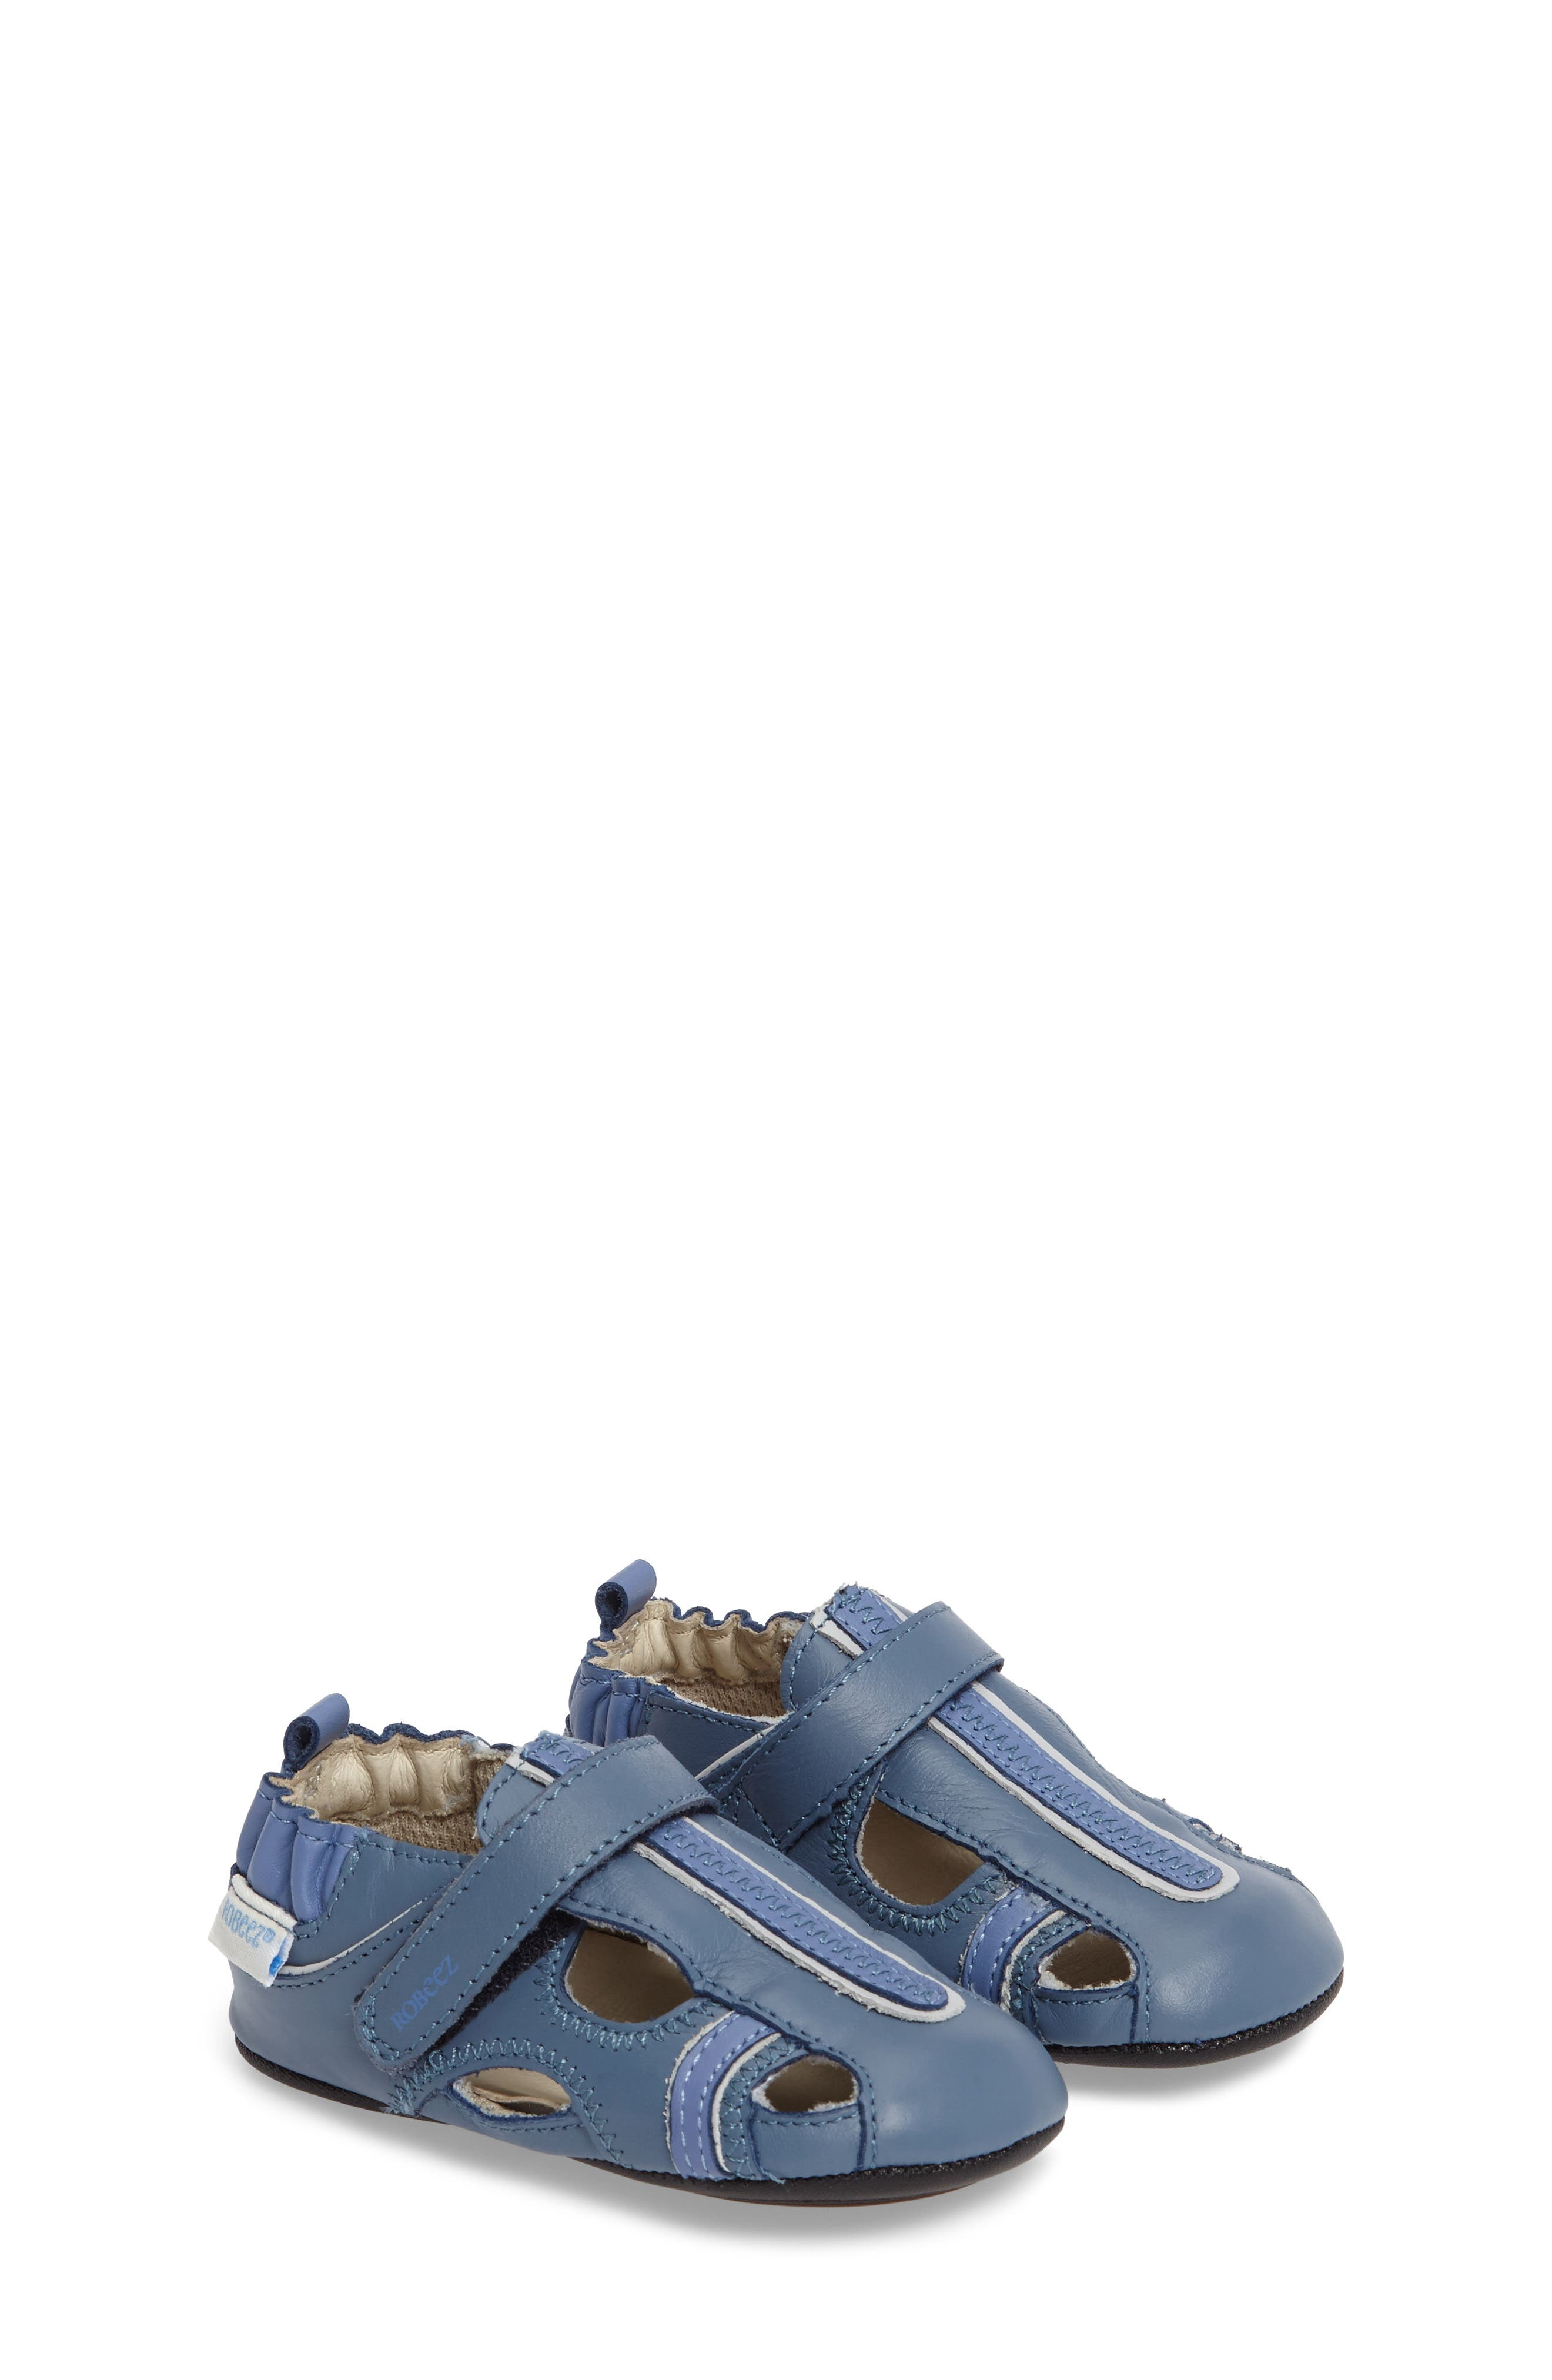 'Rugged Rob' Fisherman Sandal,                             Main thumbnail 1, color,                             402